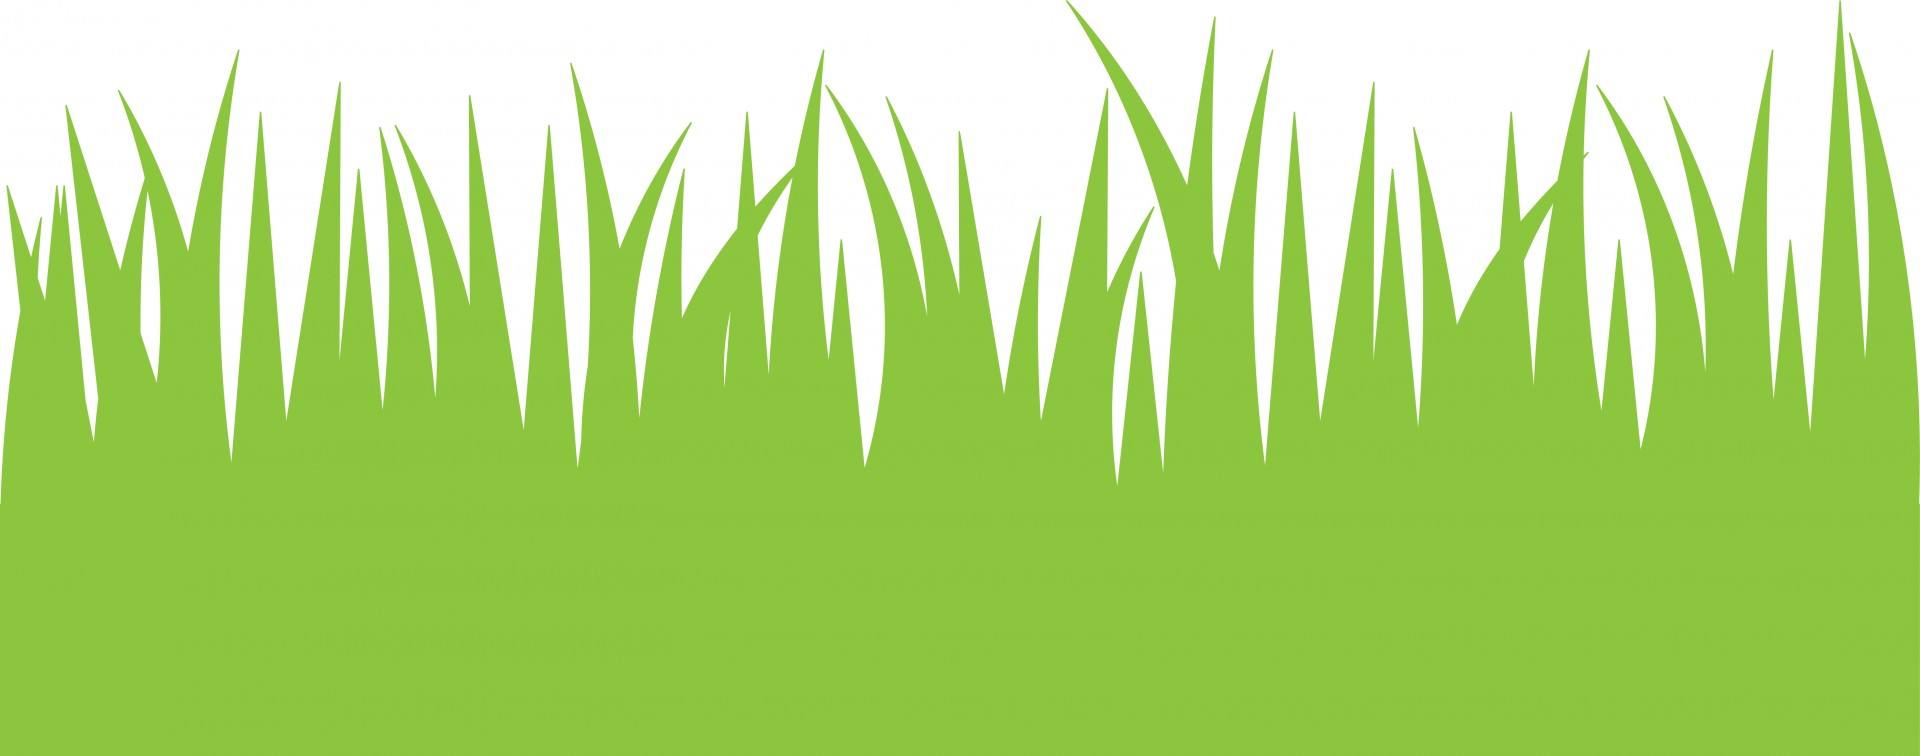 Grass outline clipart graphic stock Free Cliparts Grass Border, Download Free Clip Art, Free Clip Art on ... graphic stock